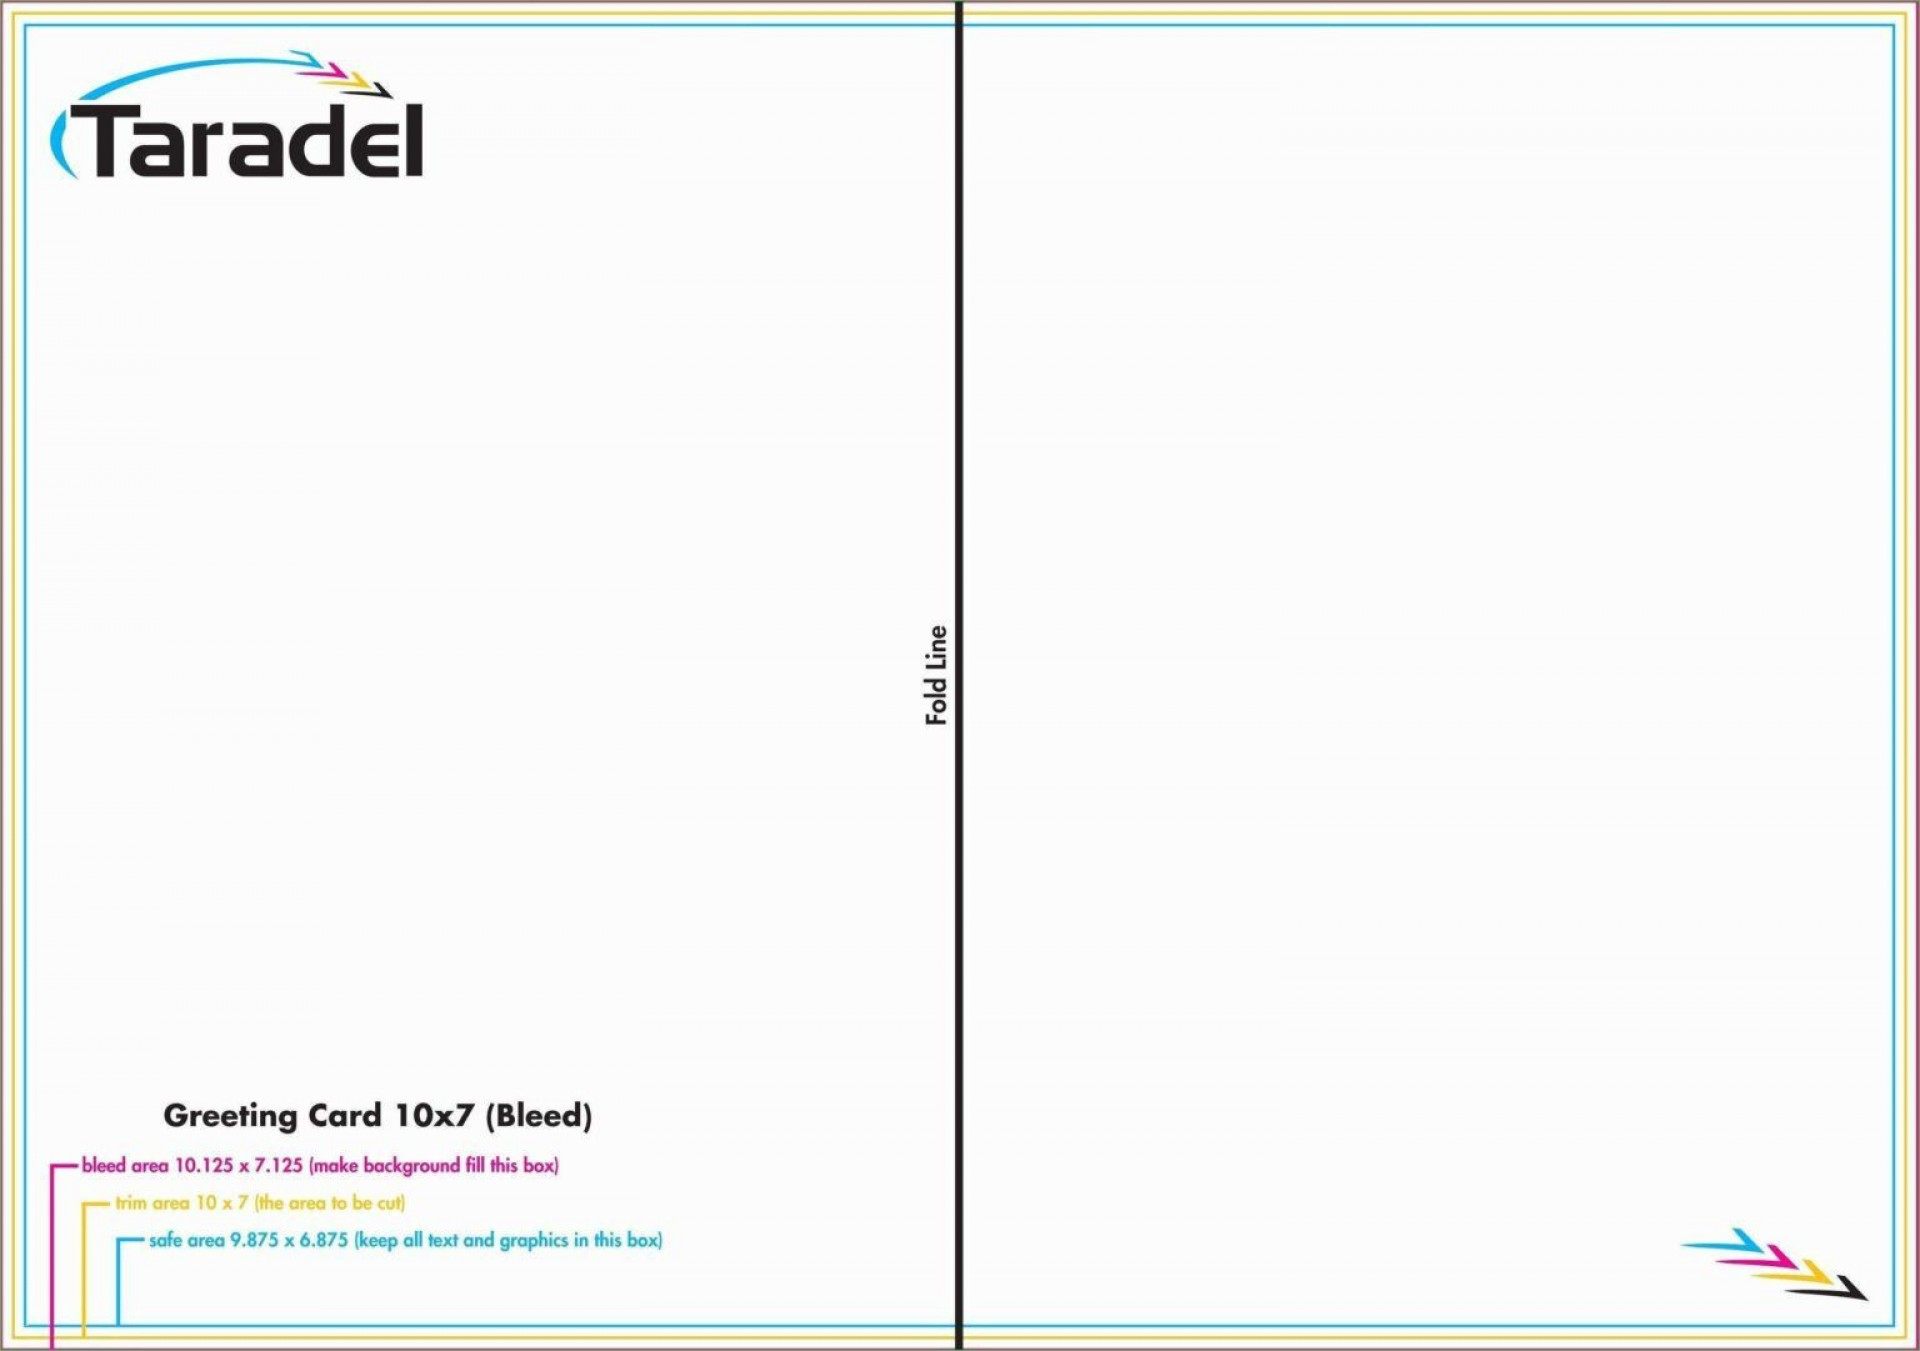 002 Staggering Quarter Fold Card Template Word Blank Image 1920